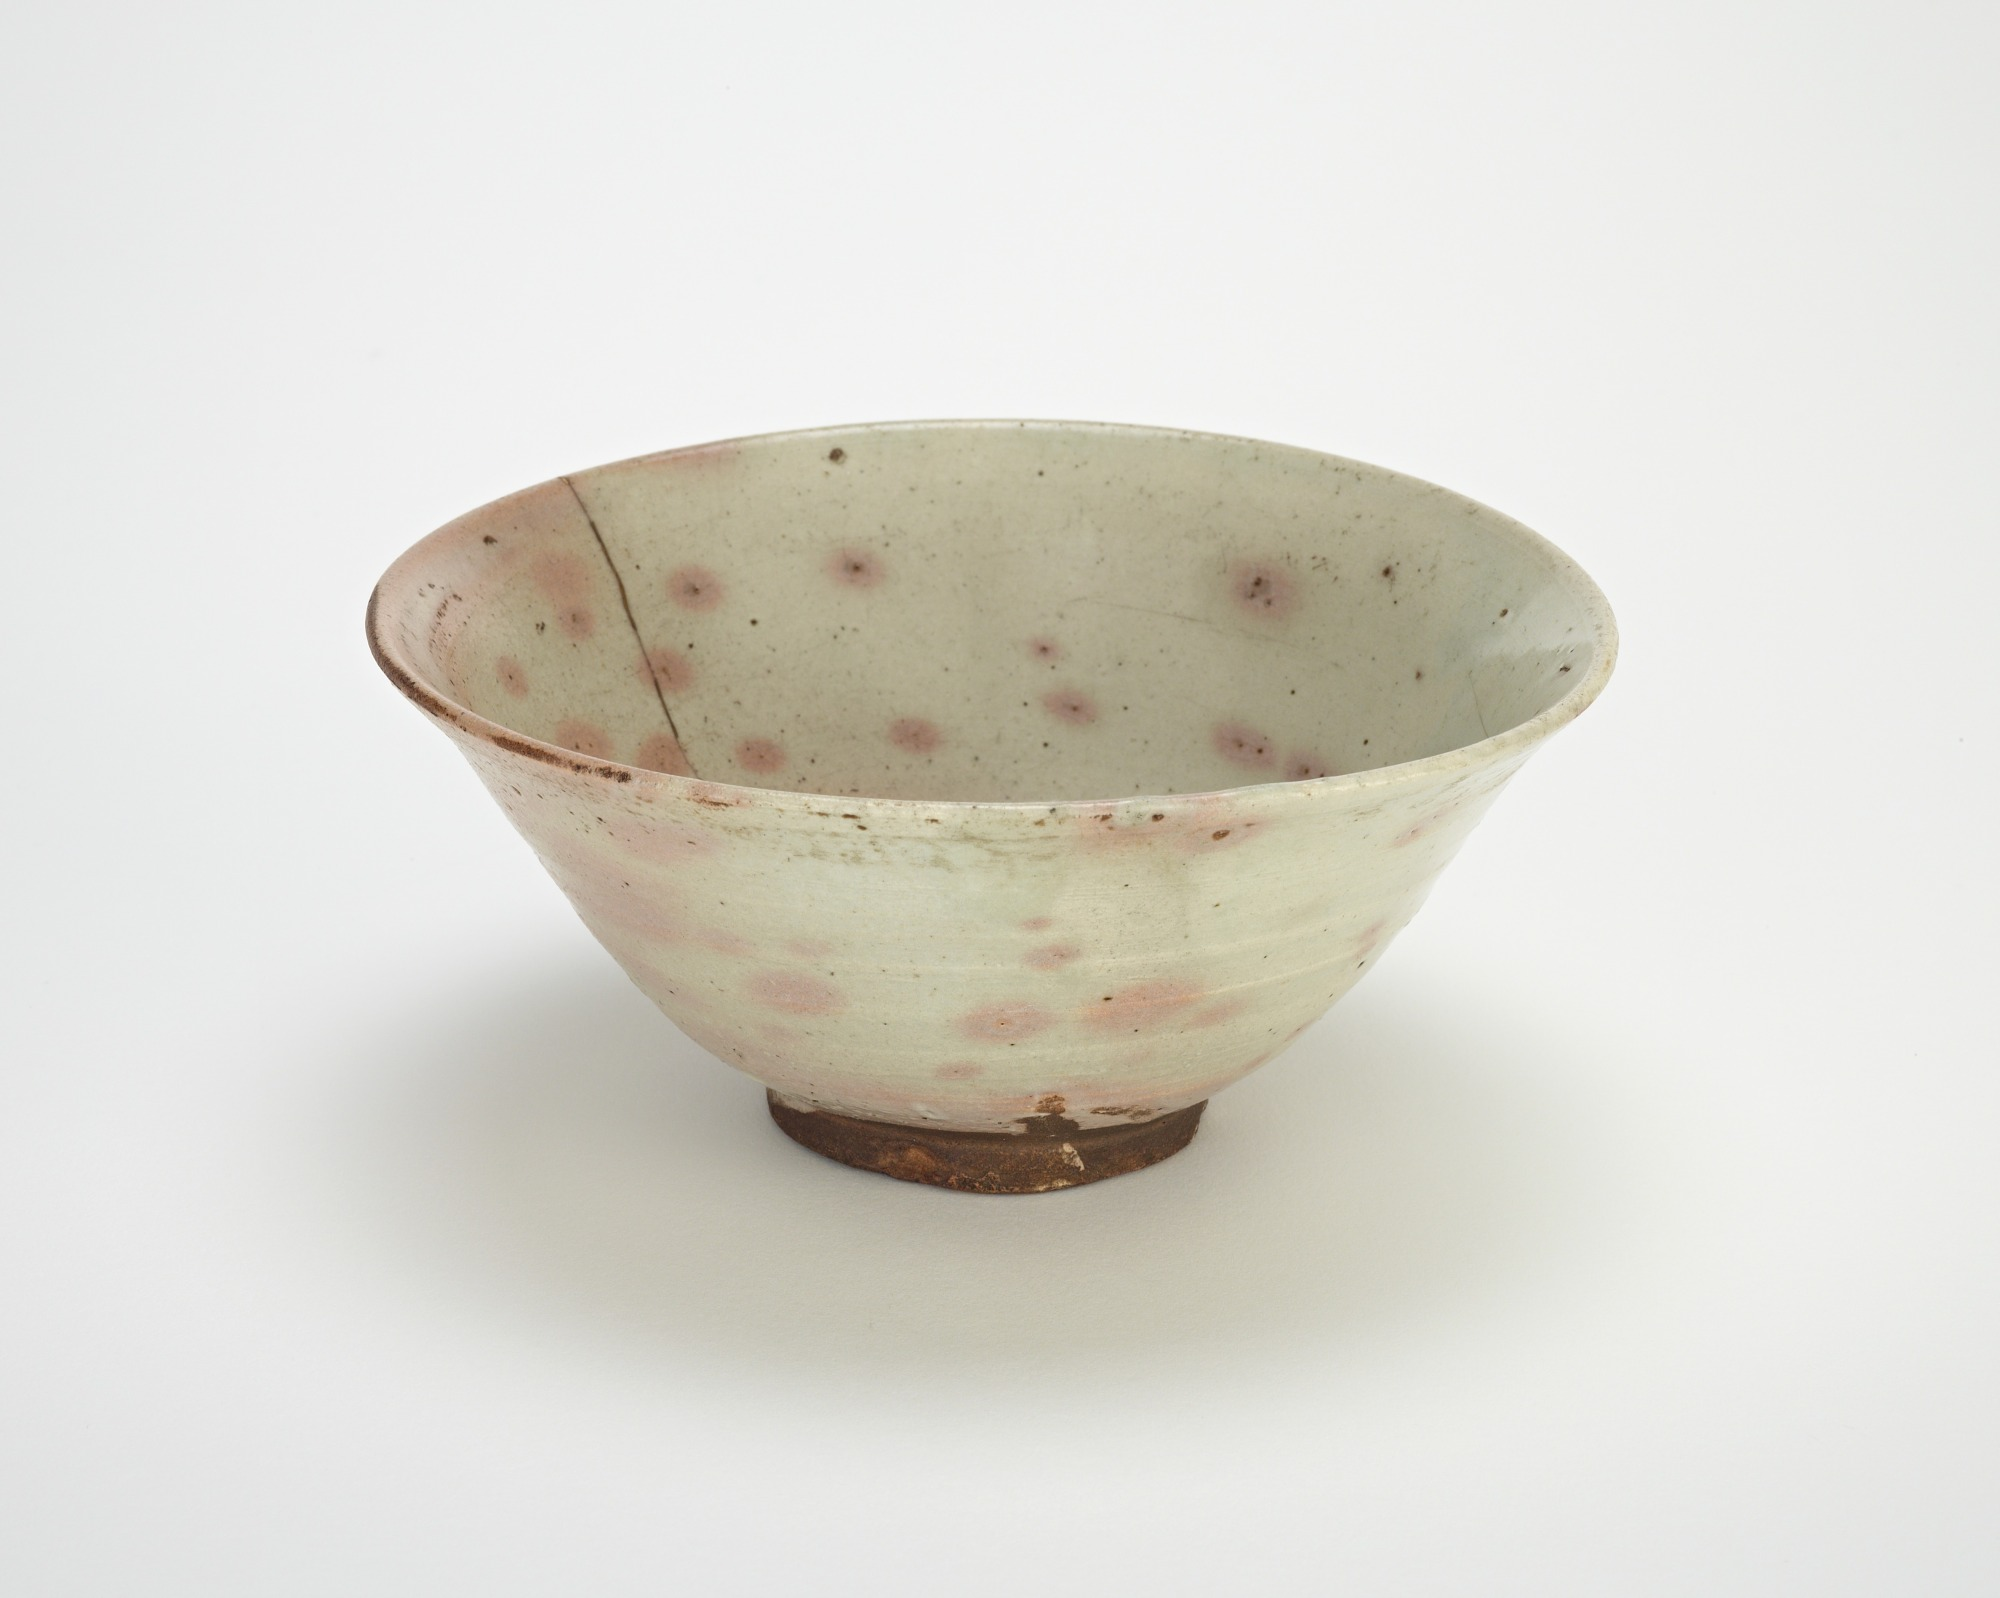 3/4 profile: Bowl